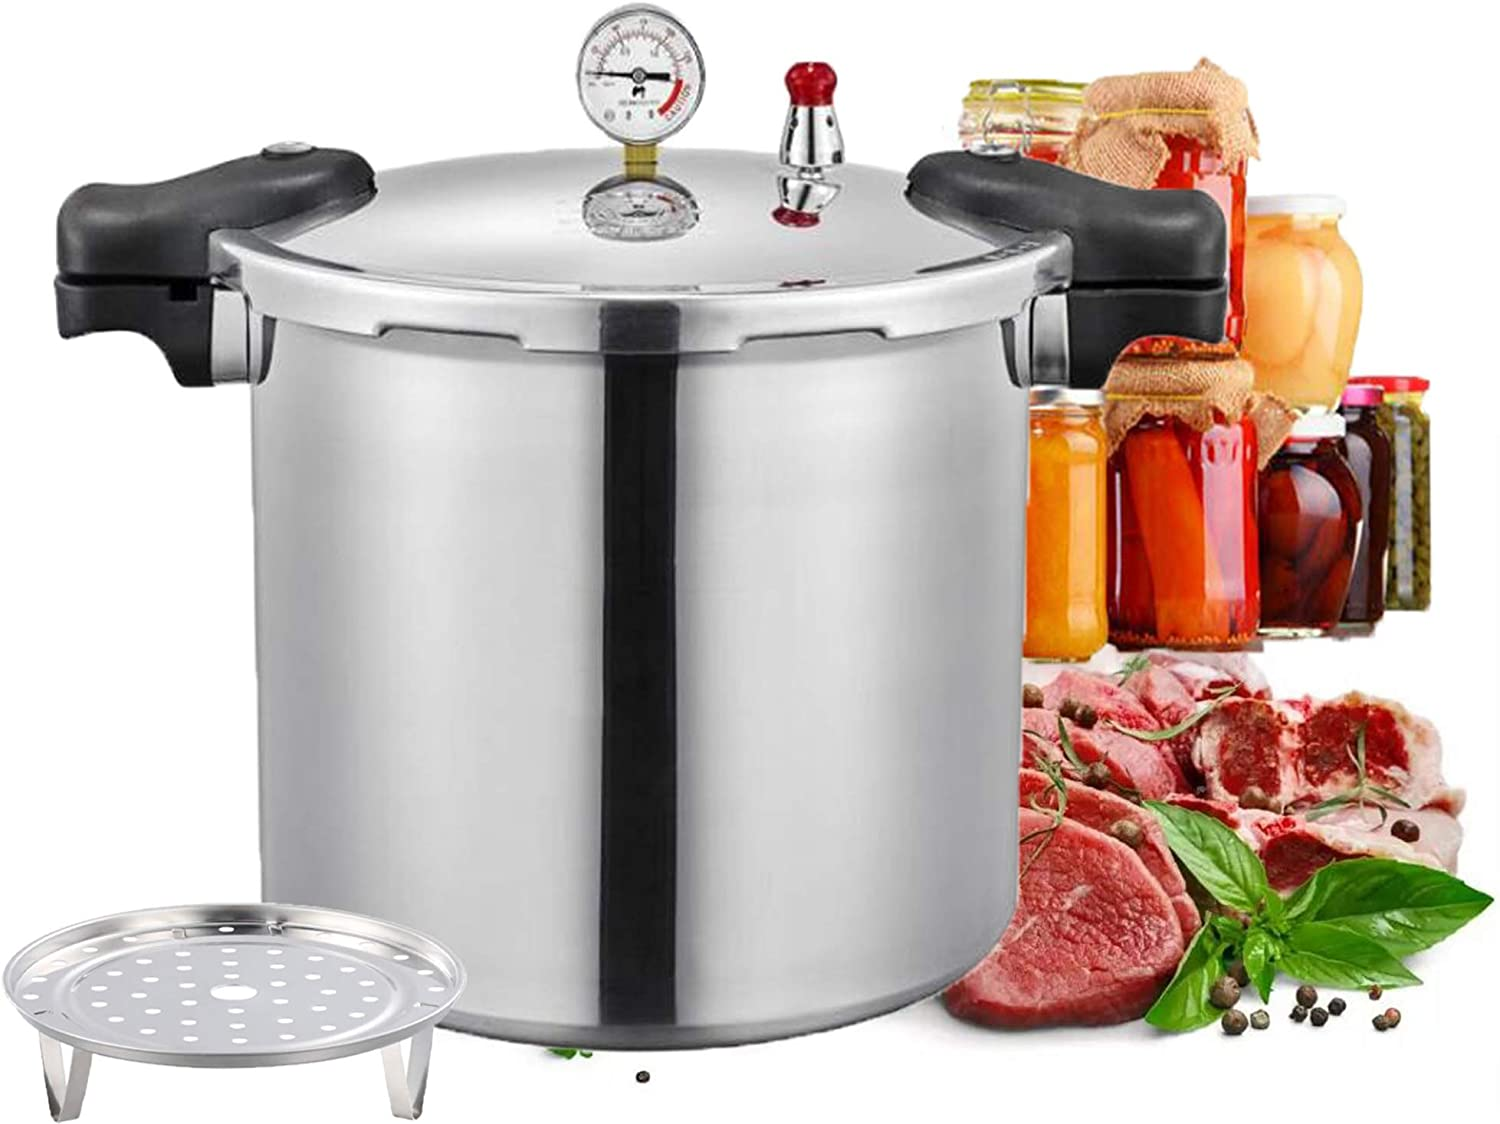 pressure canners for canning,Aluminum canner pressure cookers 25quart Pressure Canner with Pressure Control Explosion-proof safety best pressure cooker Compatible:natural gas,open flame,US.spot goods